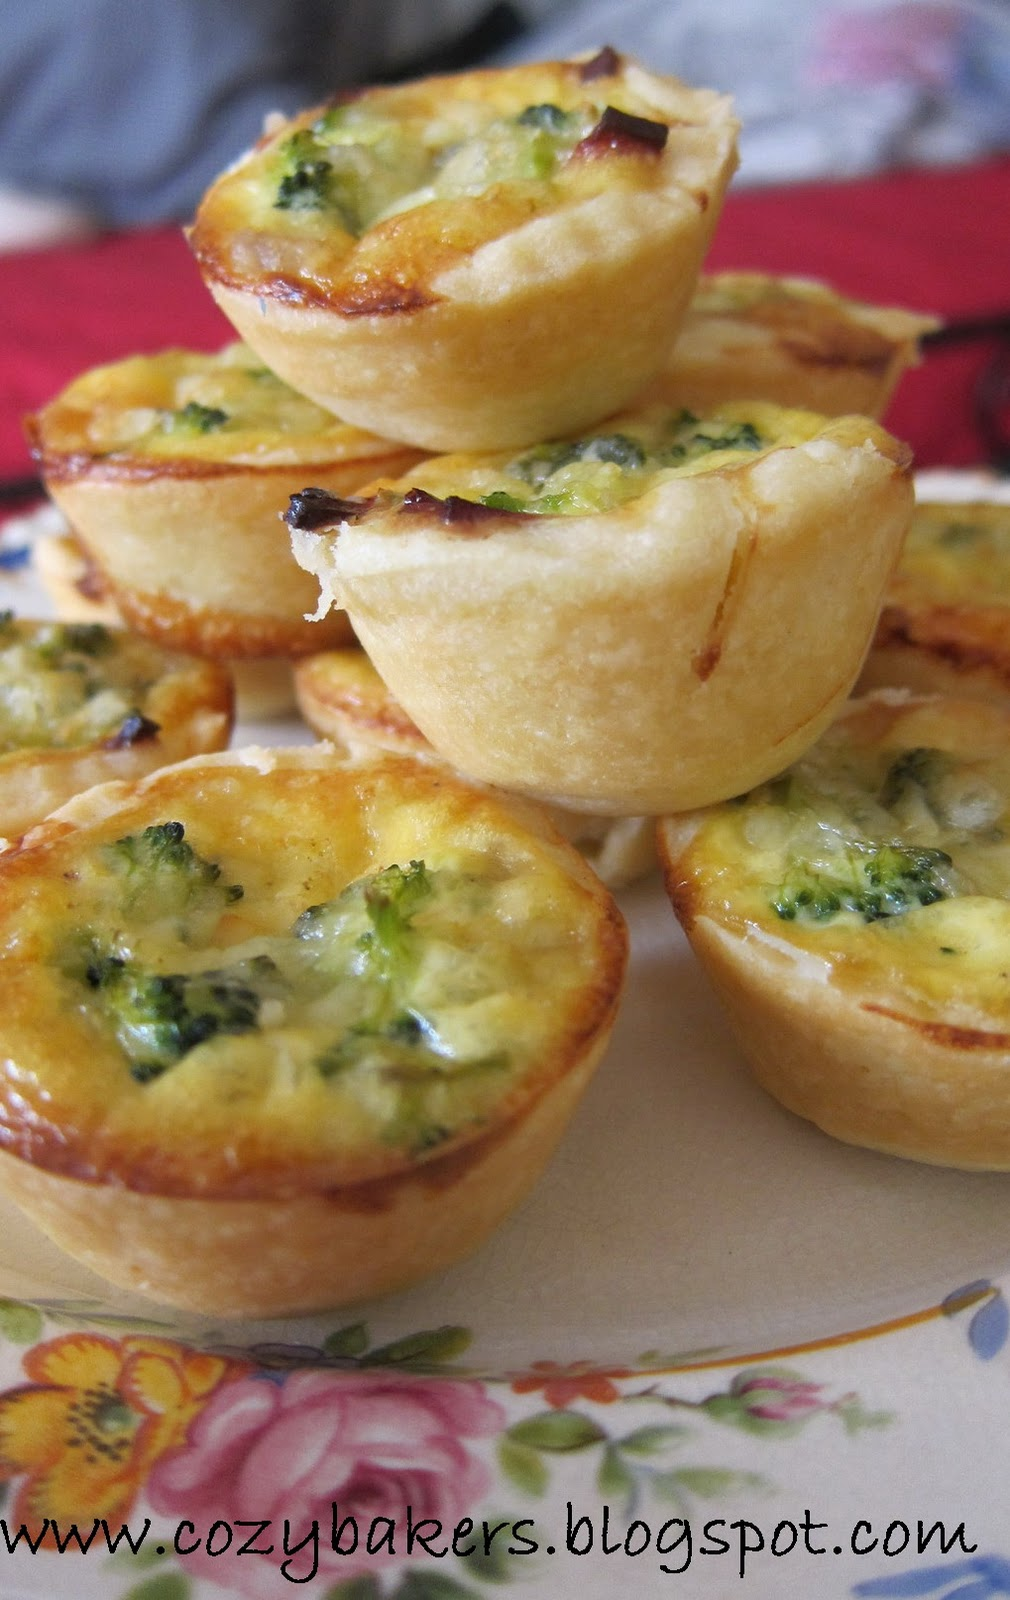 cozybakers: Broccoli, Bacon and Cheddar Cheese Mini Quiche